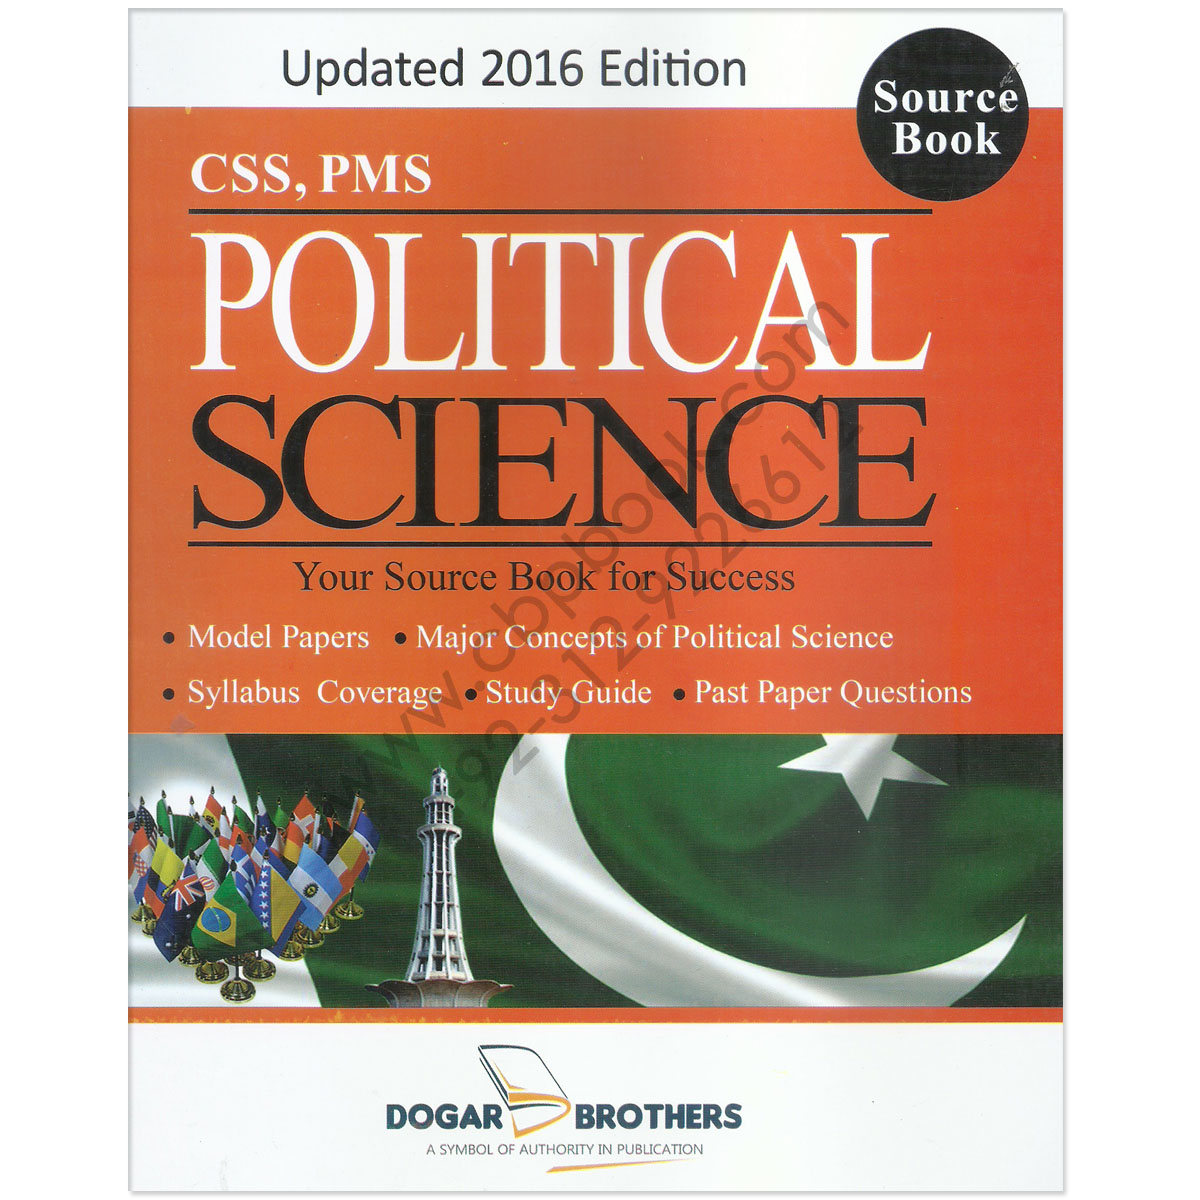 Political science 2016 for css pms by dogar brother cbpbook political science biocorpaavc Choice Image